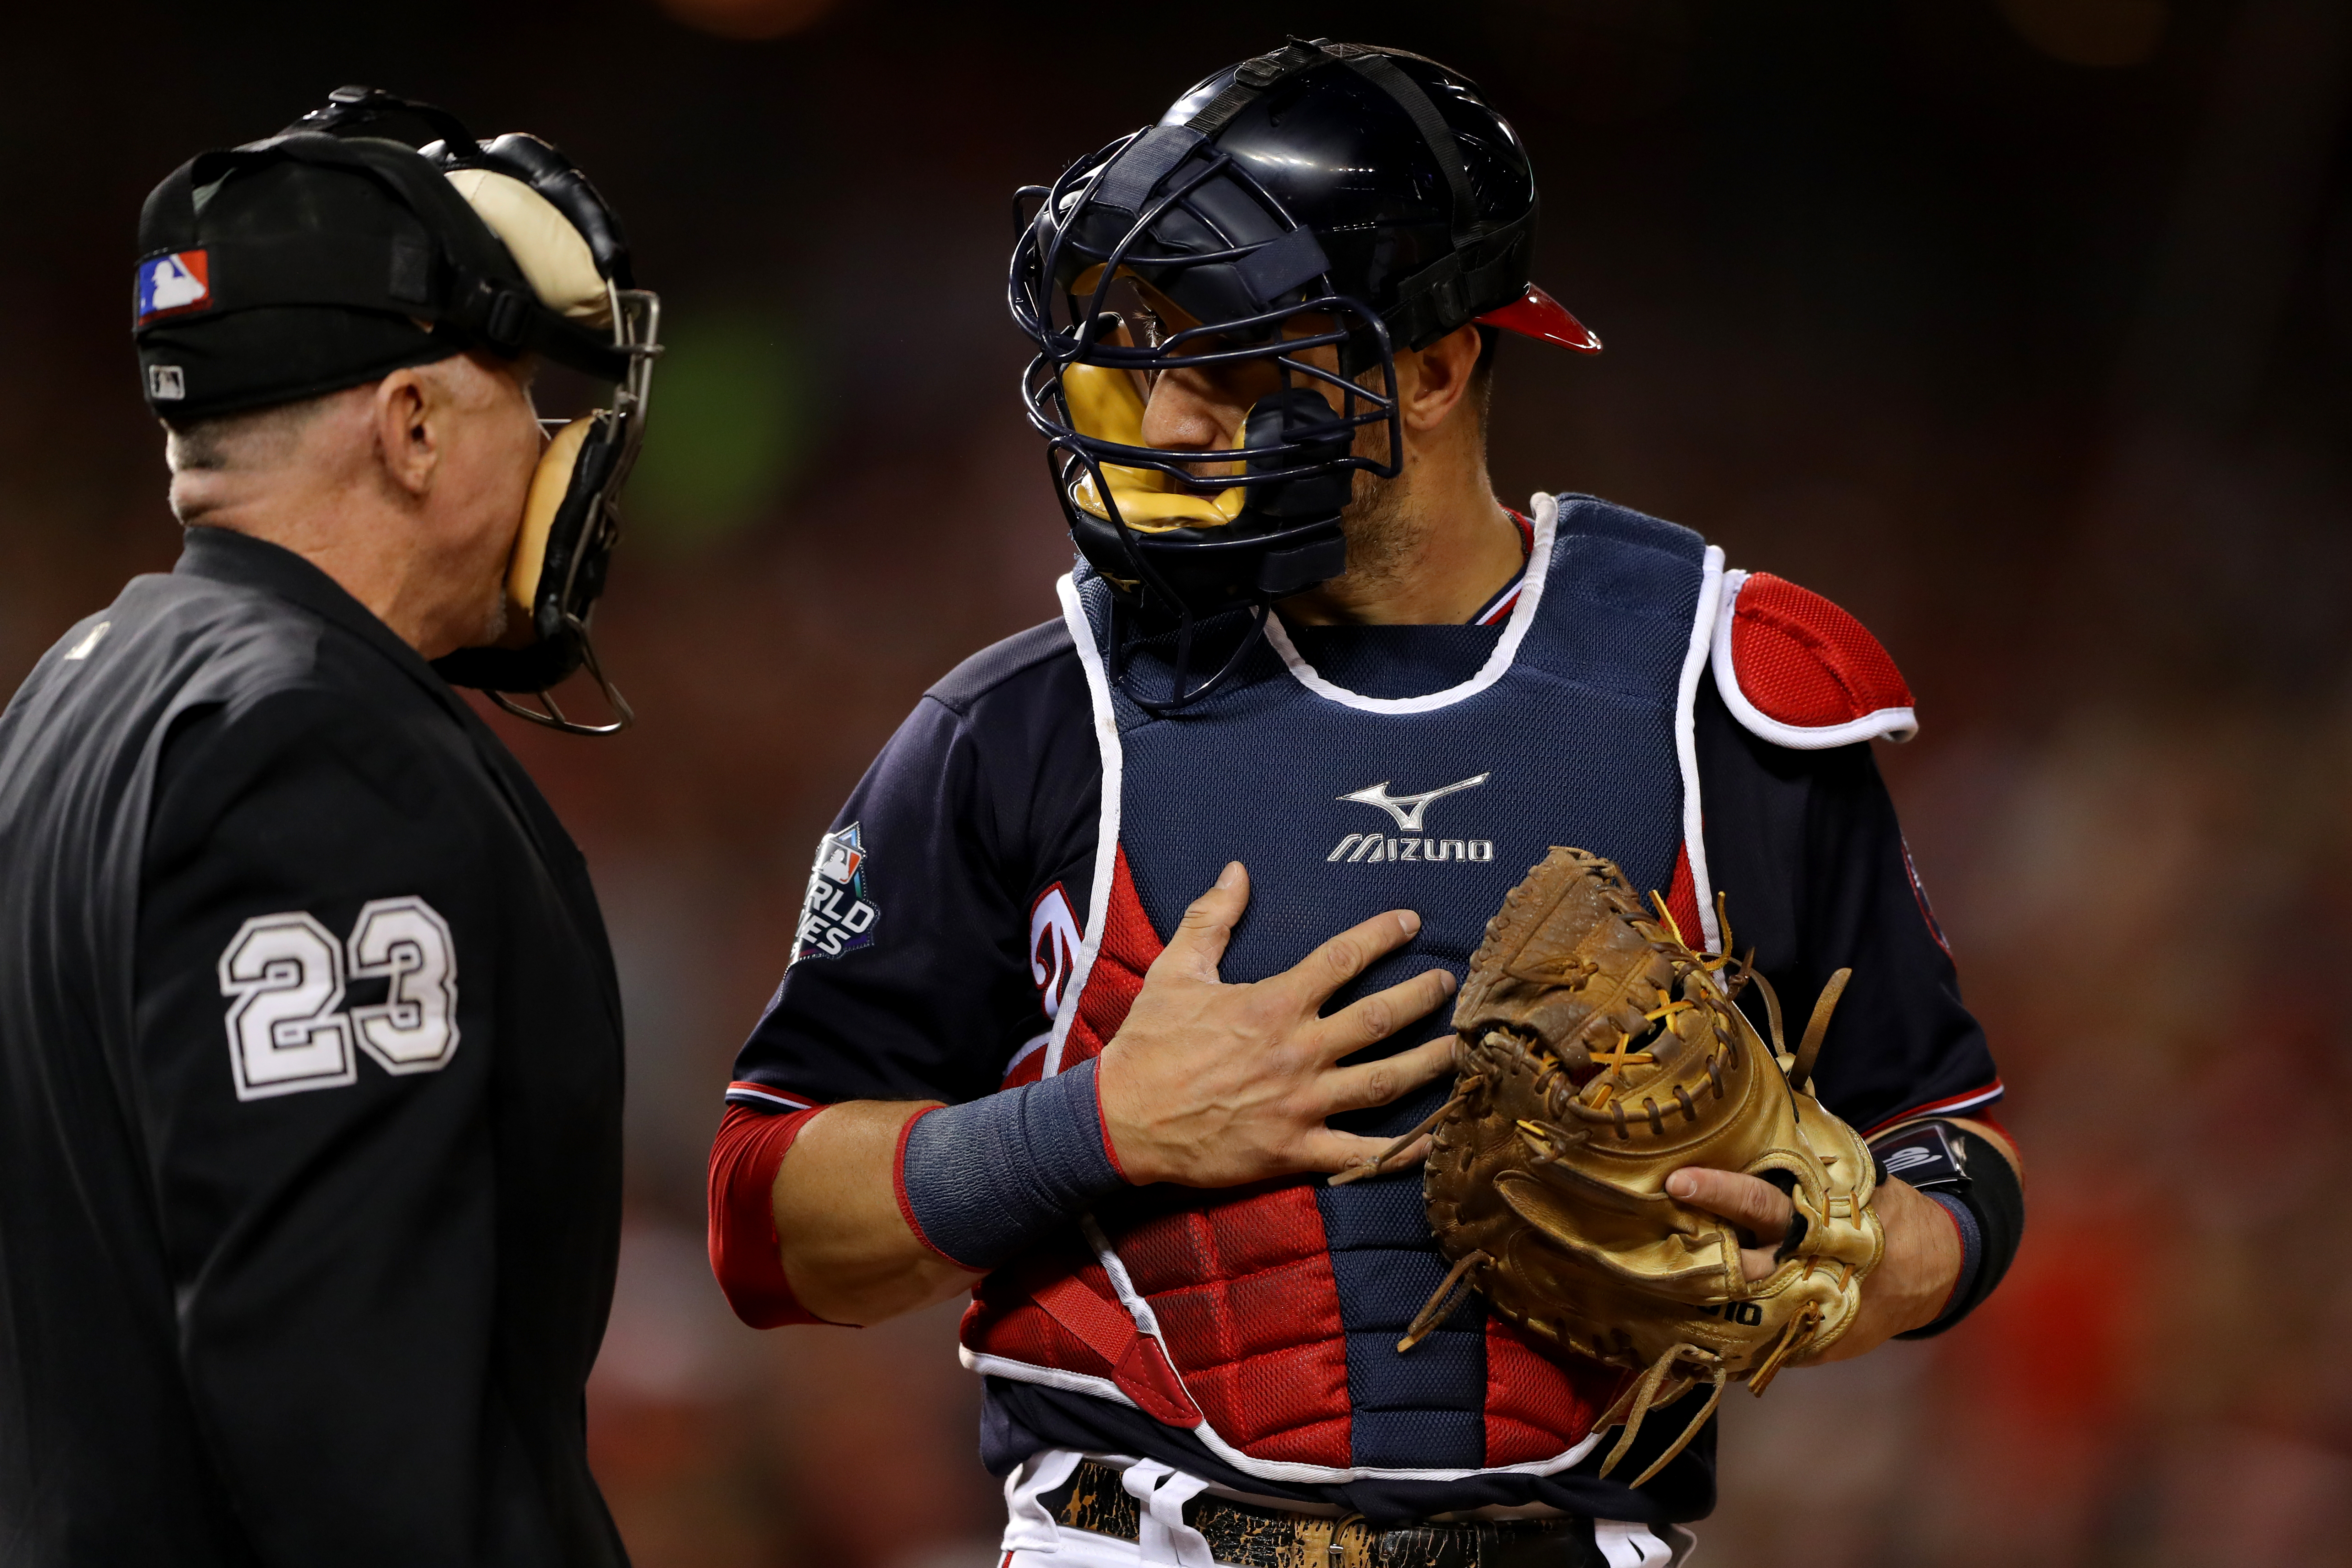 The Astros vs. Nationals World Series Game 5 left everyone mad at umpire Lance Barksdale.